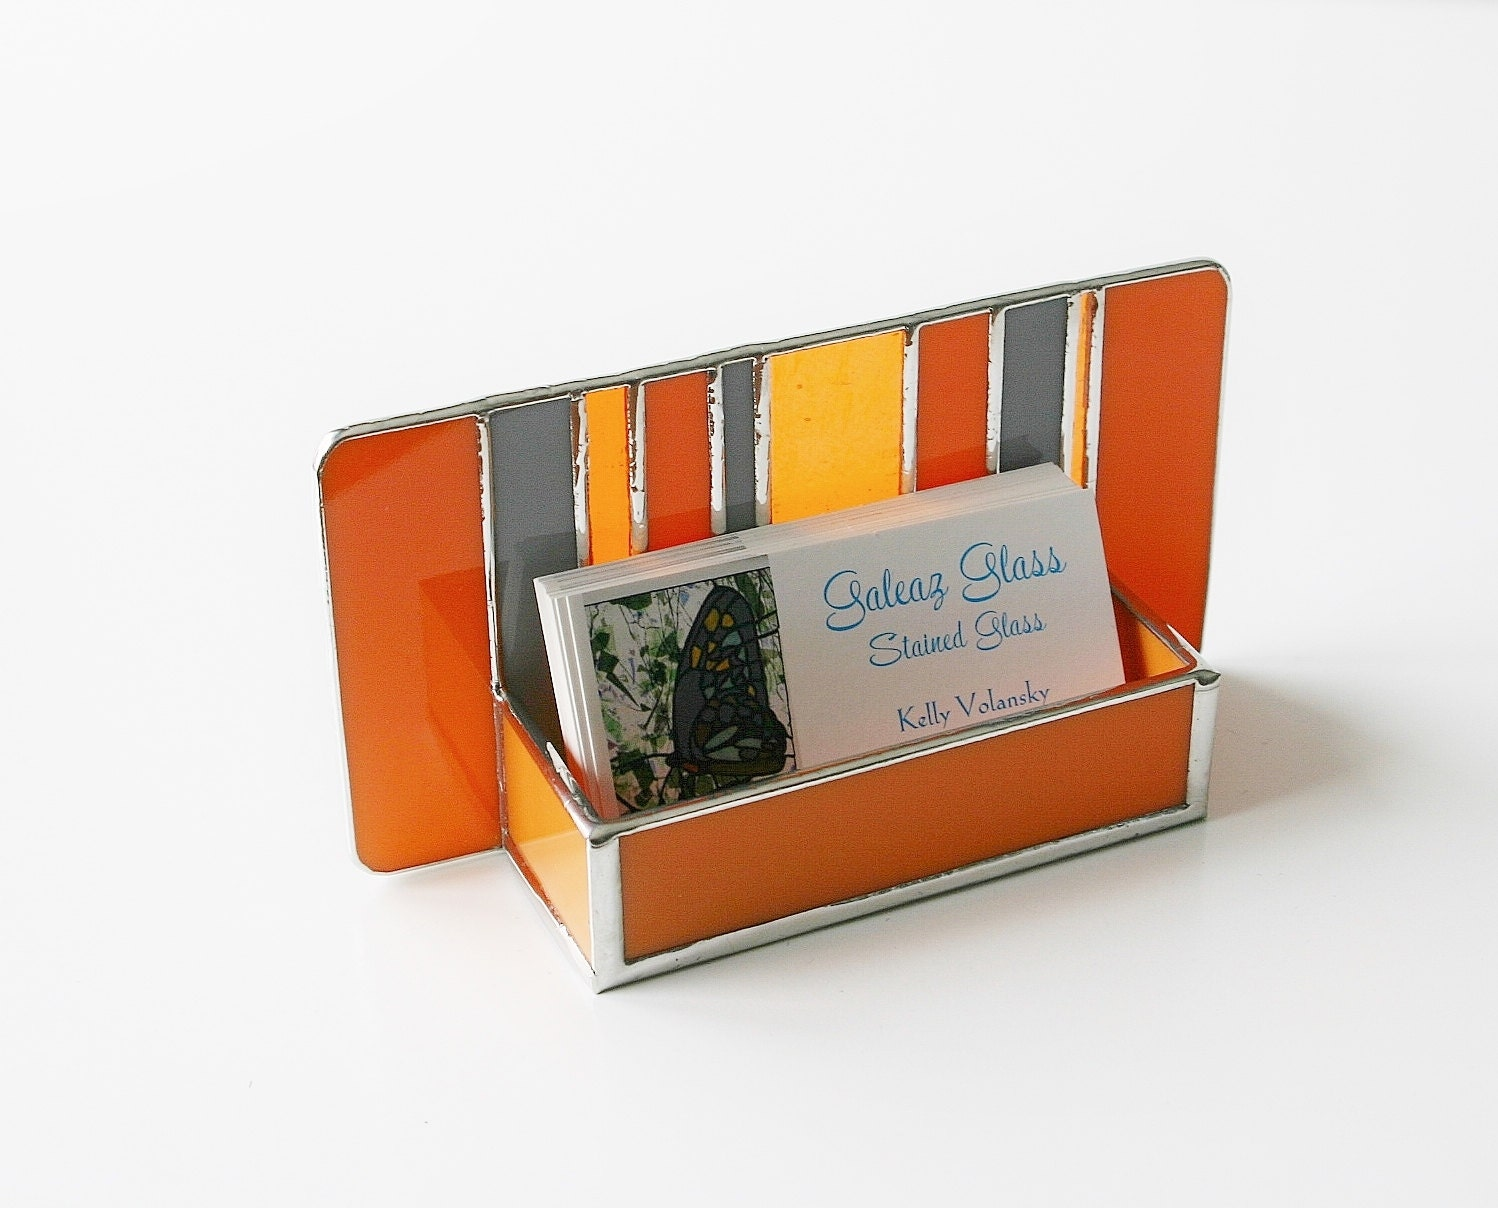 Stained glass modern business card holder retro by galeazglass for Vintage business card case